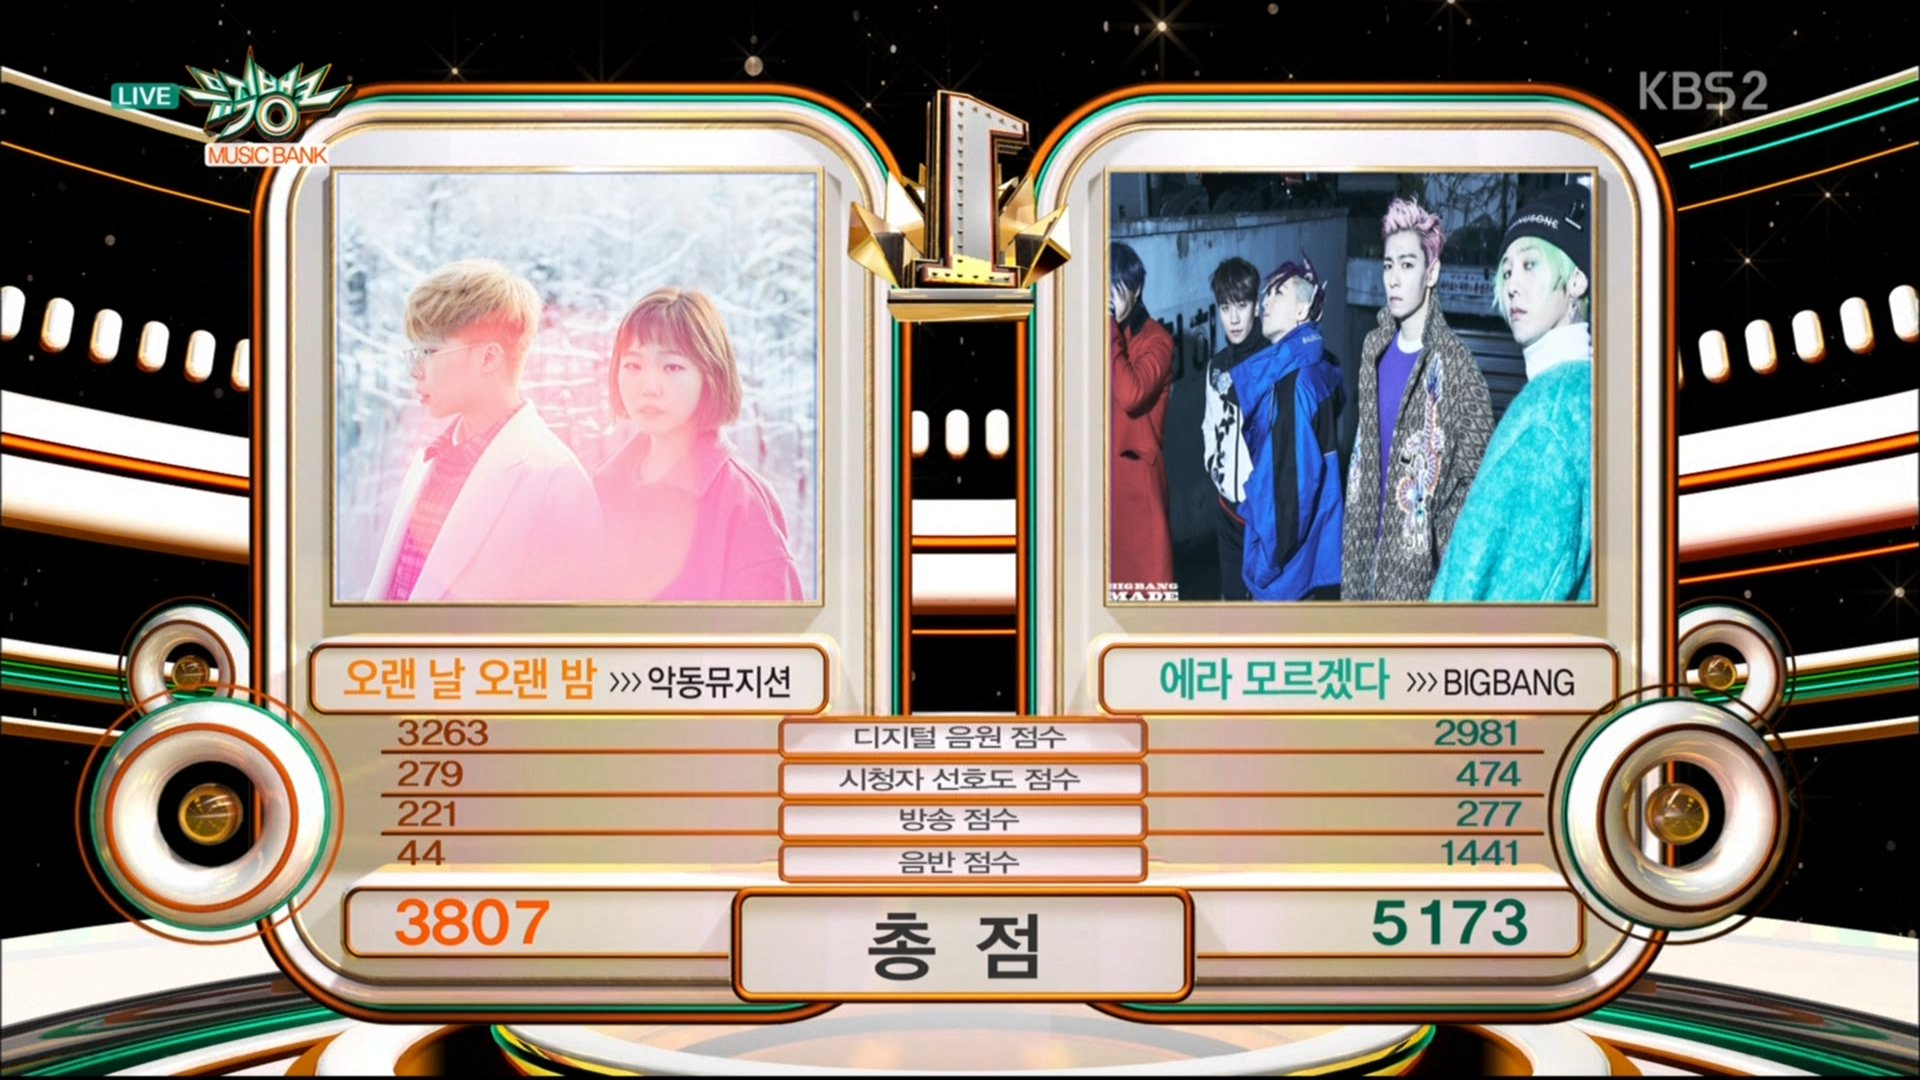 """BIGBANG Snags 8th Win For """"FXXK IT"""" On """"Music Bank"""""""